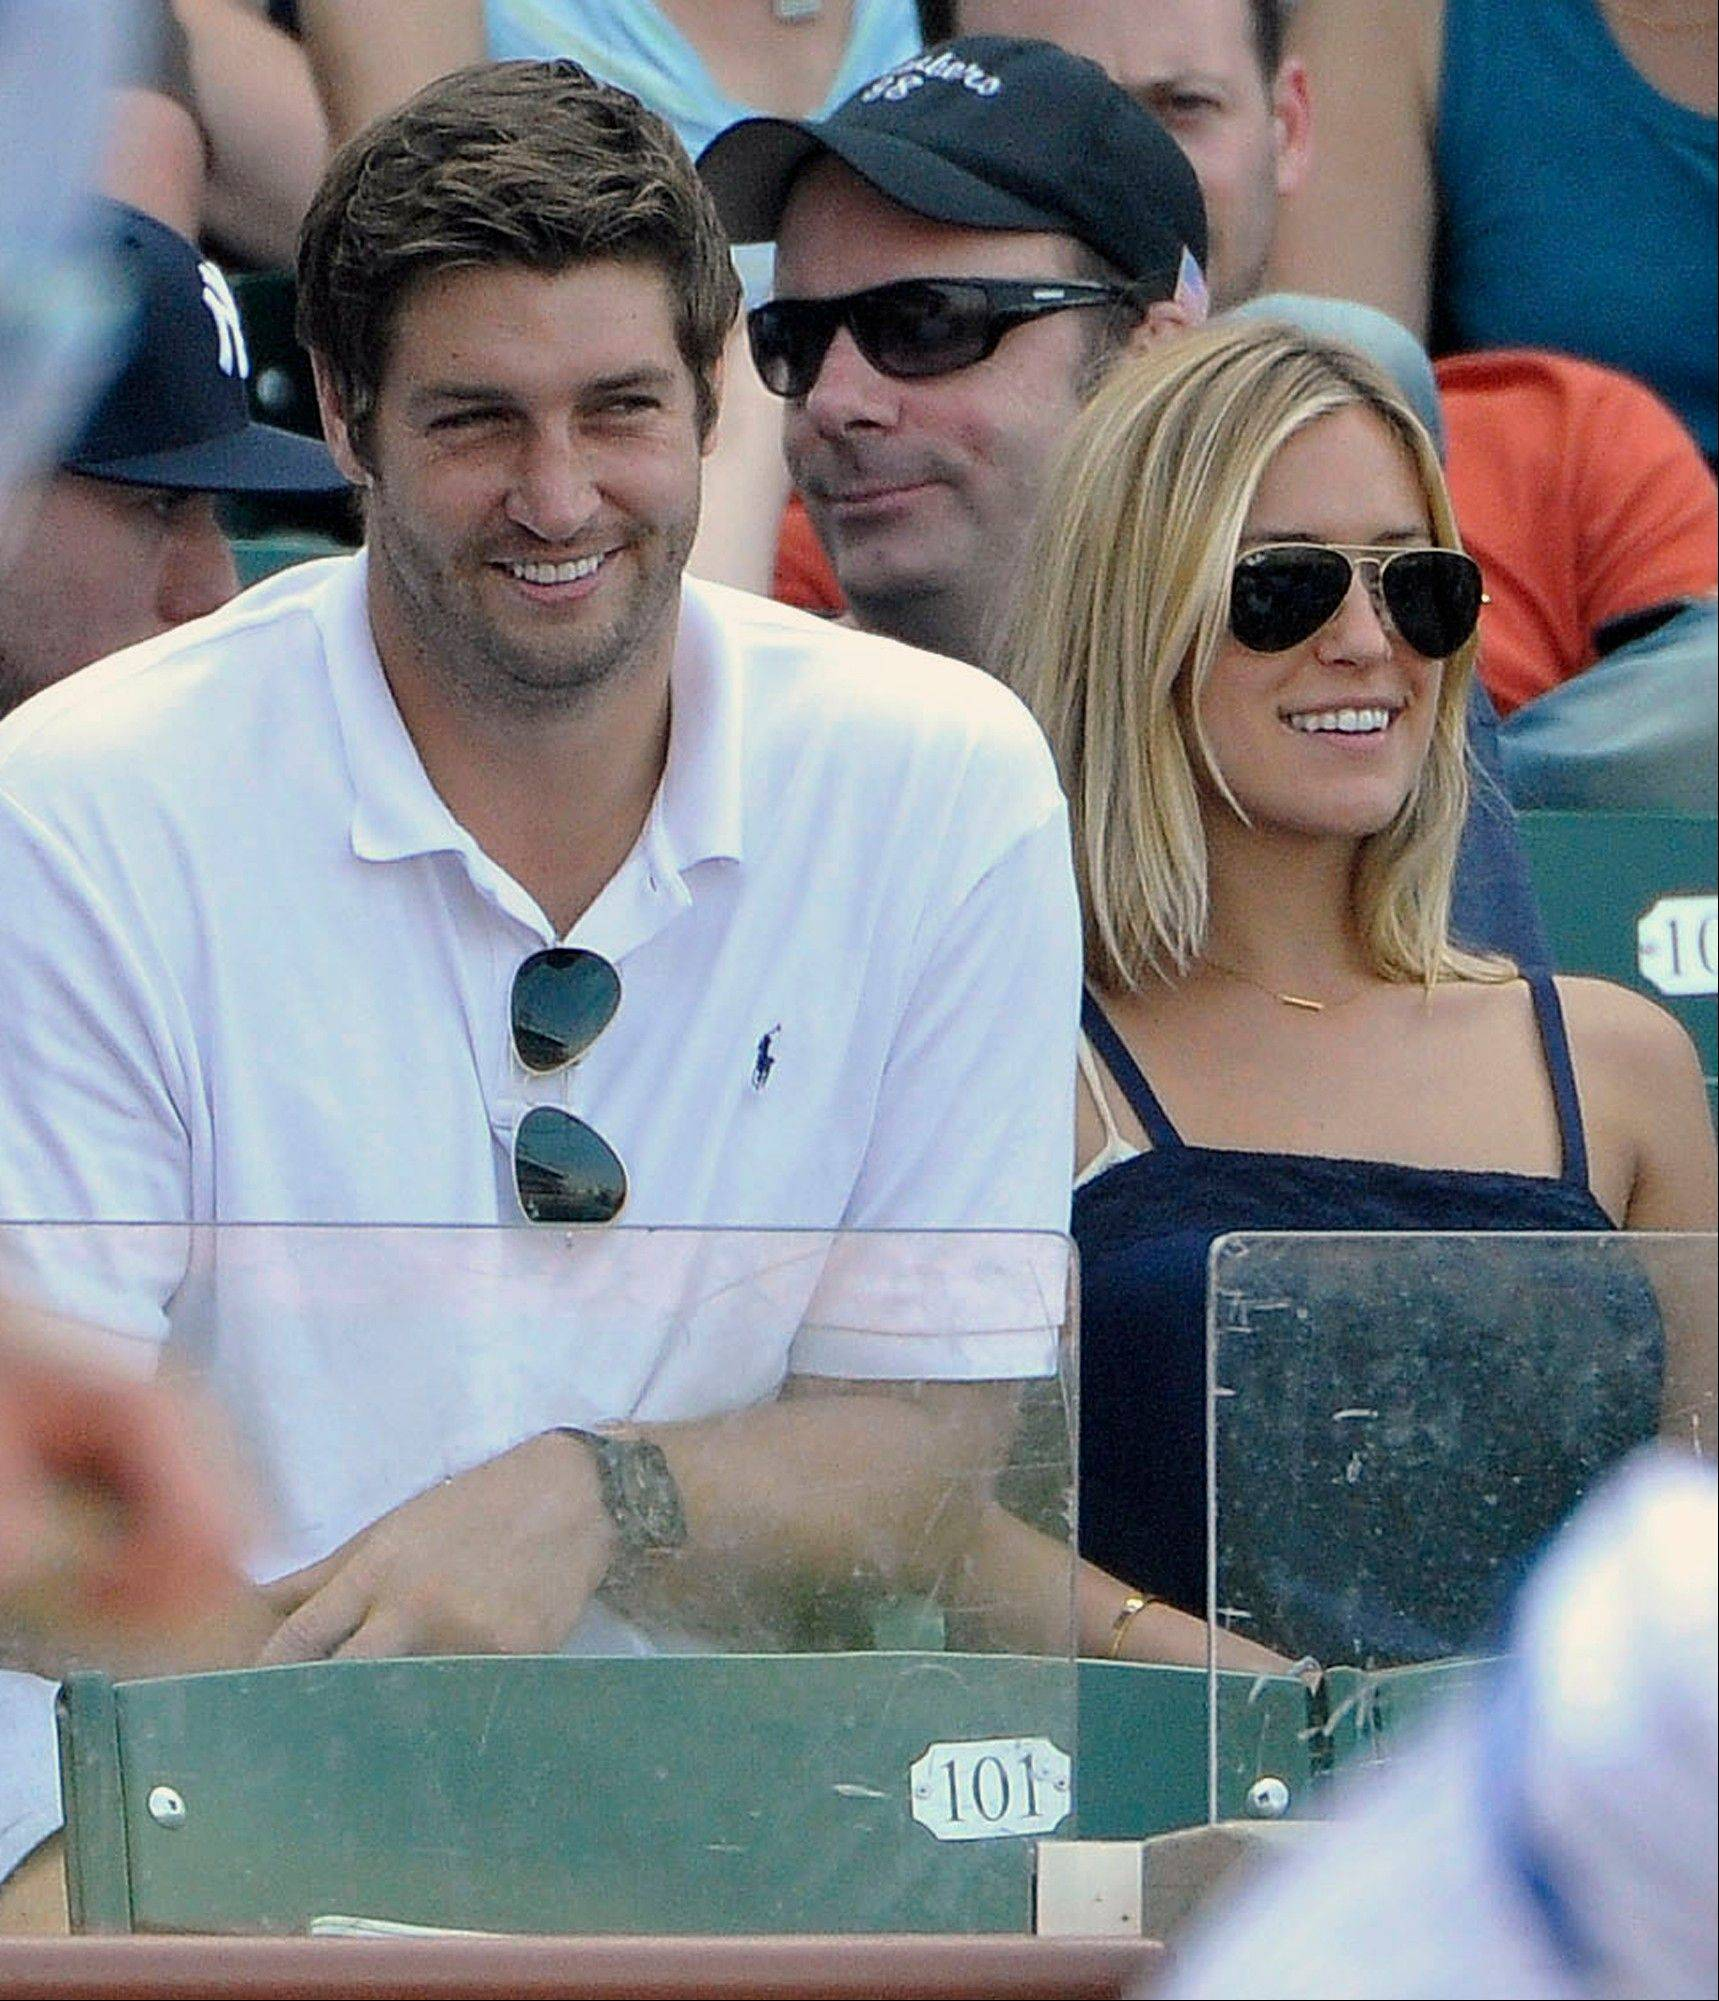 FILE - In this July 2, 2011, file photo, Chicago Bears quarterback Jay Cutler, center, and Kristin Cavallari watch the Chicago Cubs play the Chicago White Sox during an interleague baseball game in Chicago. Cutler and Cavallari are engaged again. The reality TV star announced the engagement Wednesday, Nov. 30, 2011, on her Twitter feed, saying: �This time its official..Jay and I are engaged again :).�